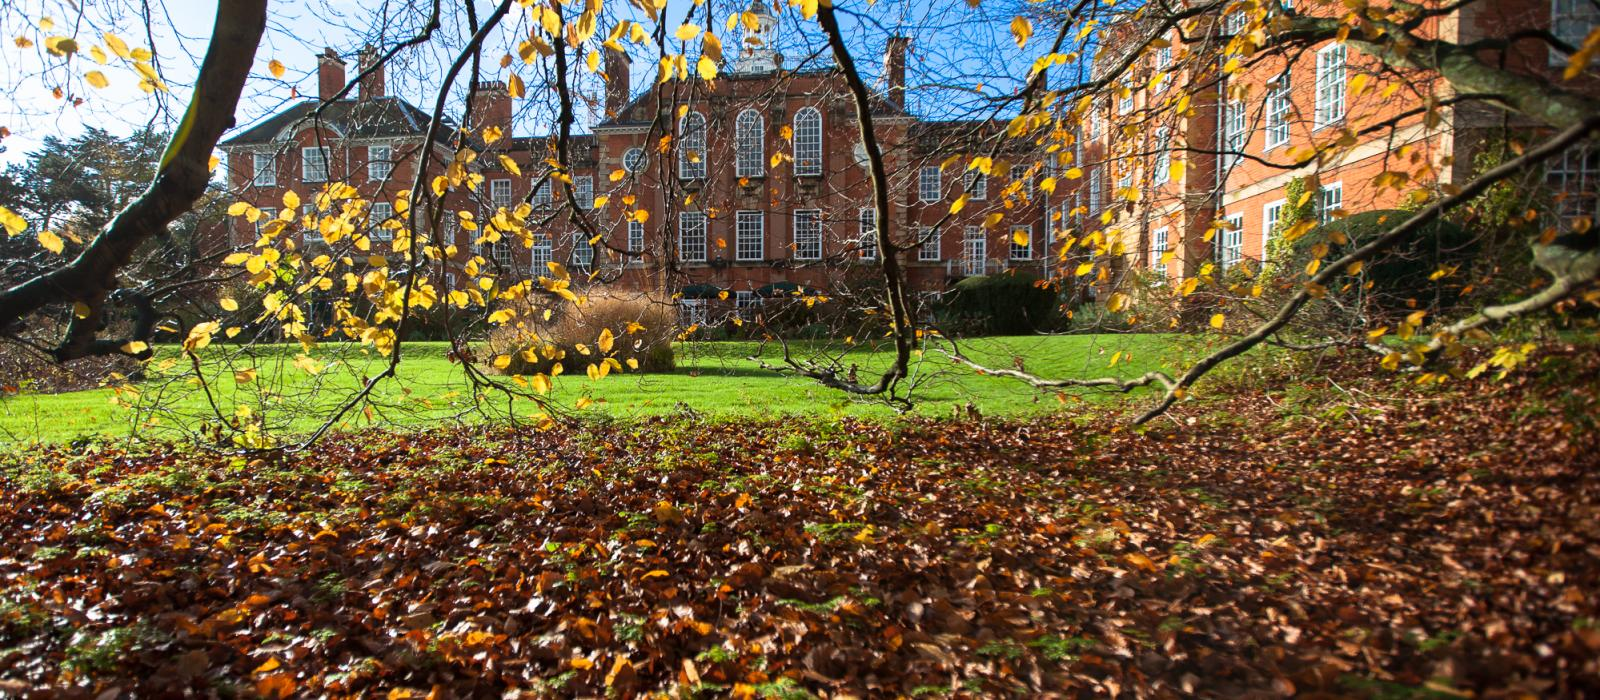 LMH in Autumn (photo credit: Ben Robinson)